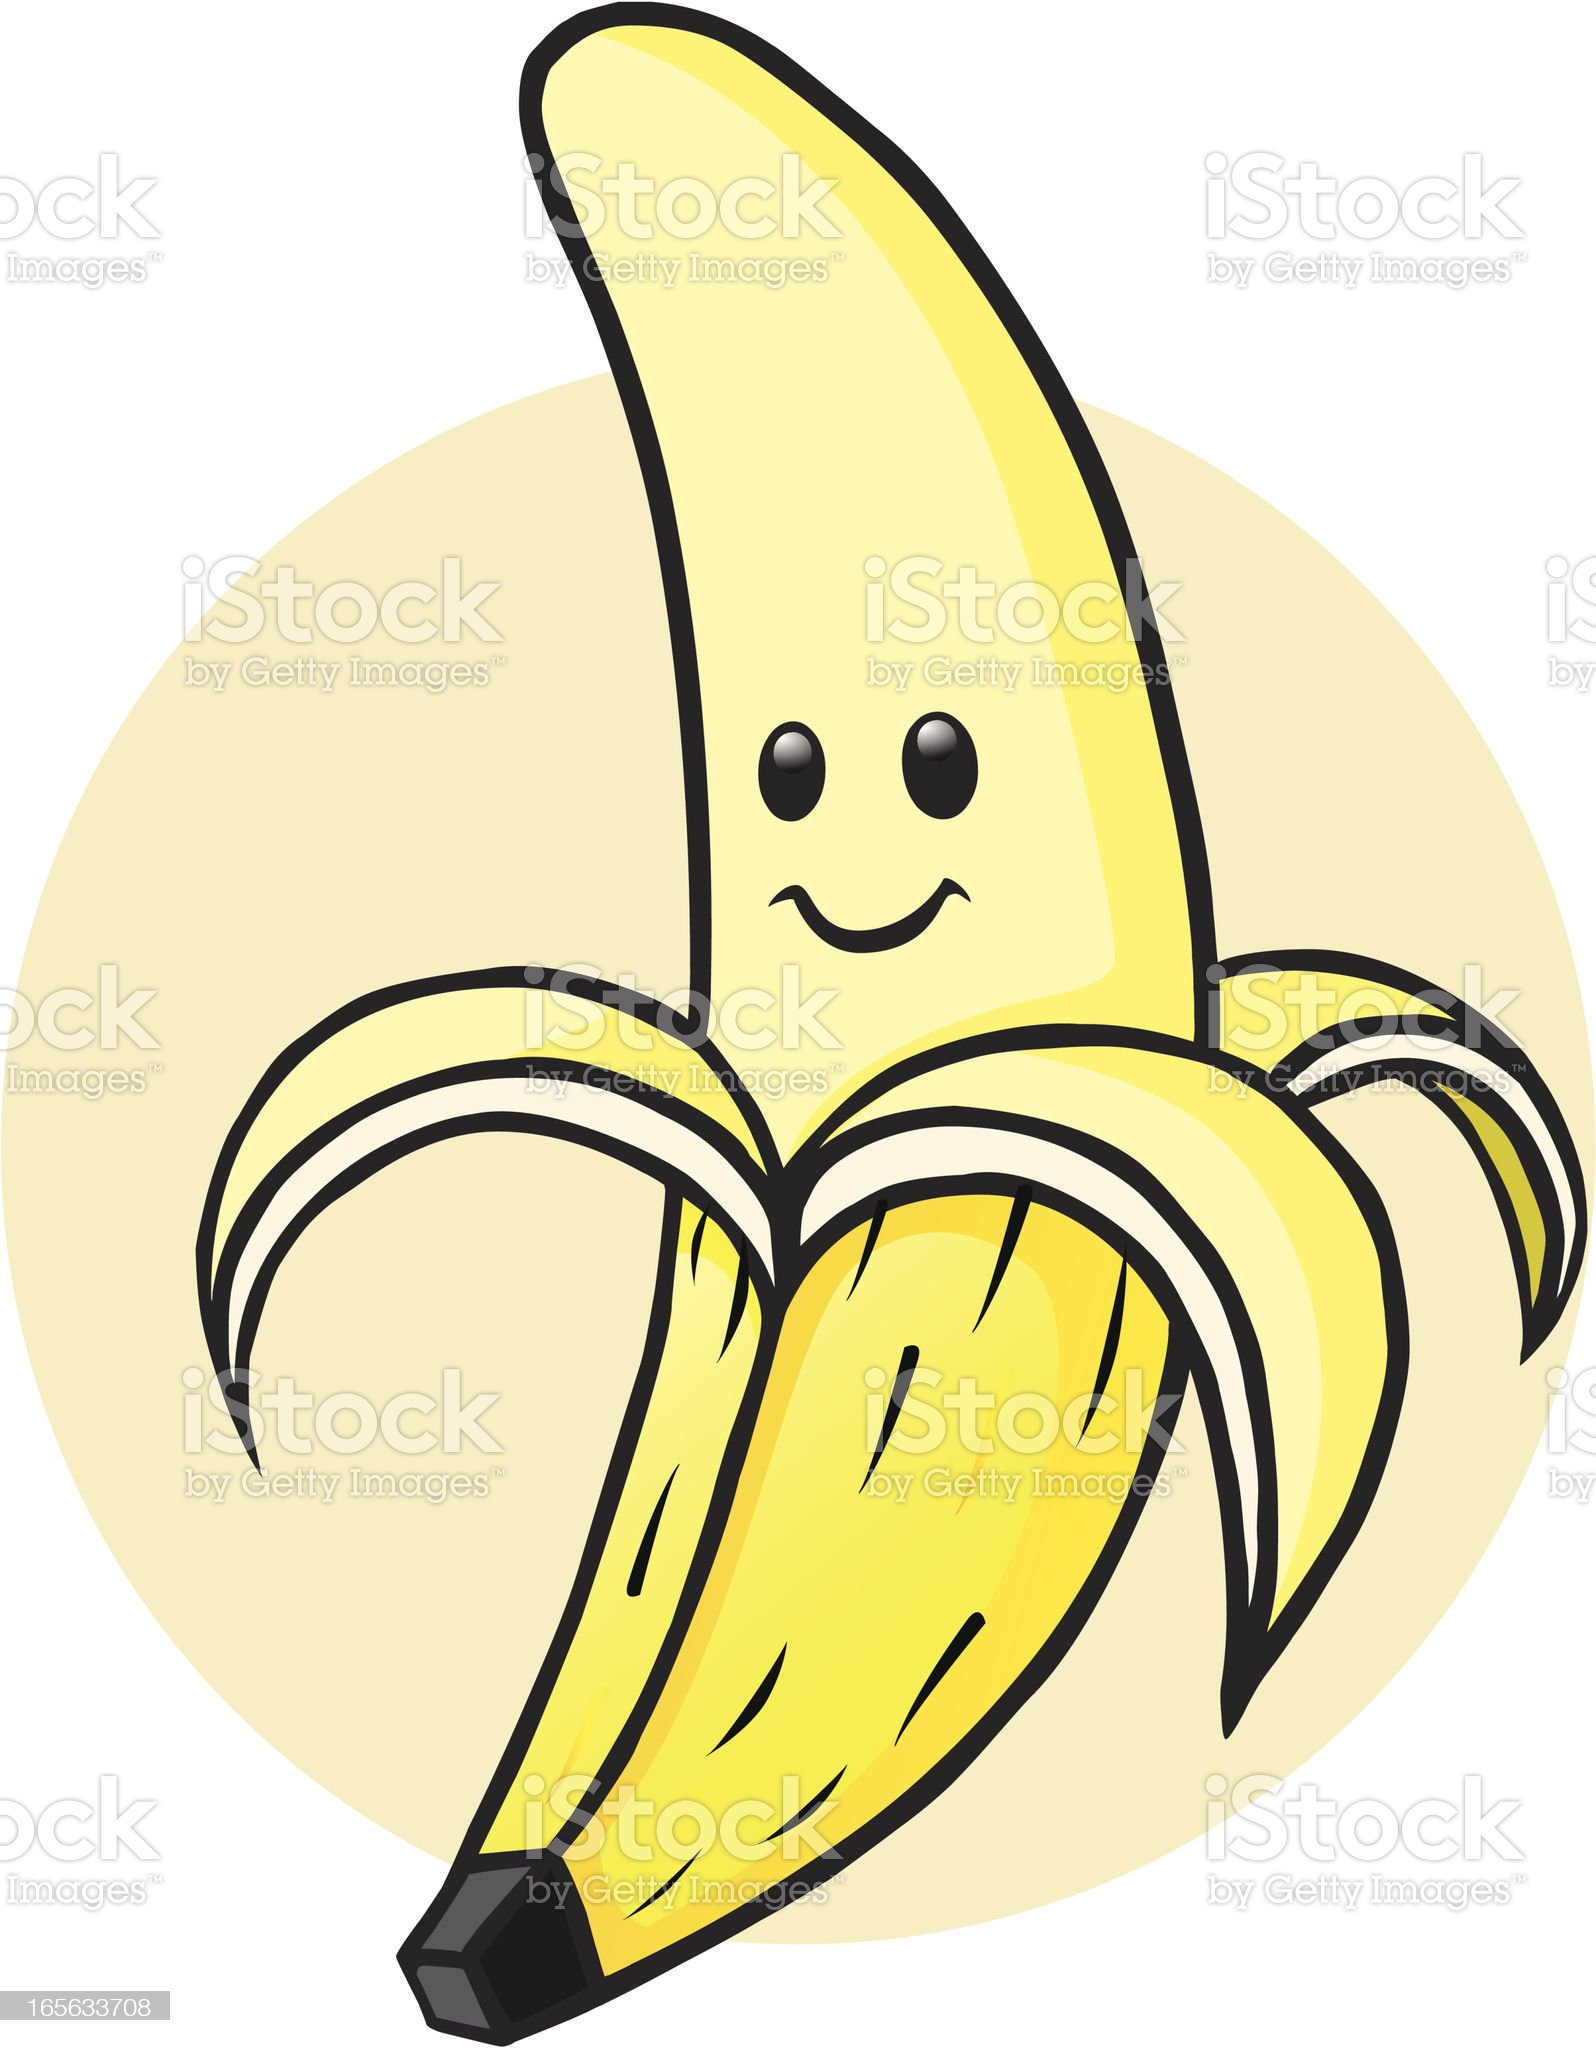 Peeled Banana Character royalty-free stock vector art